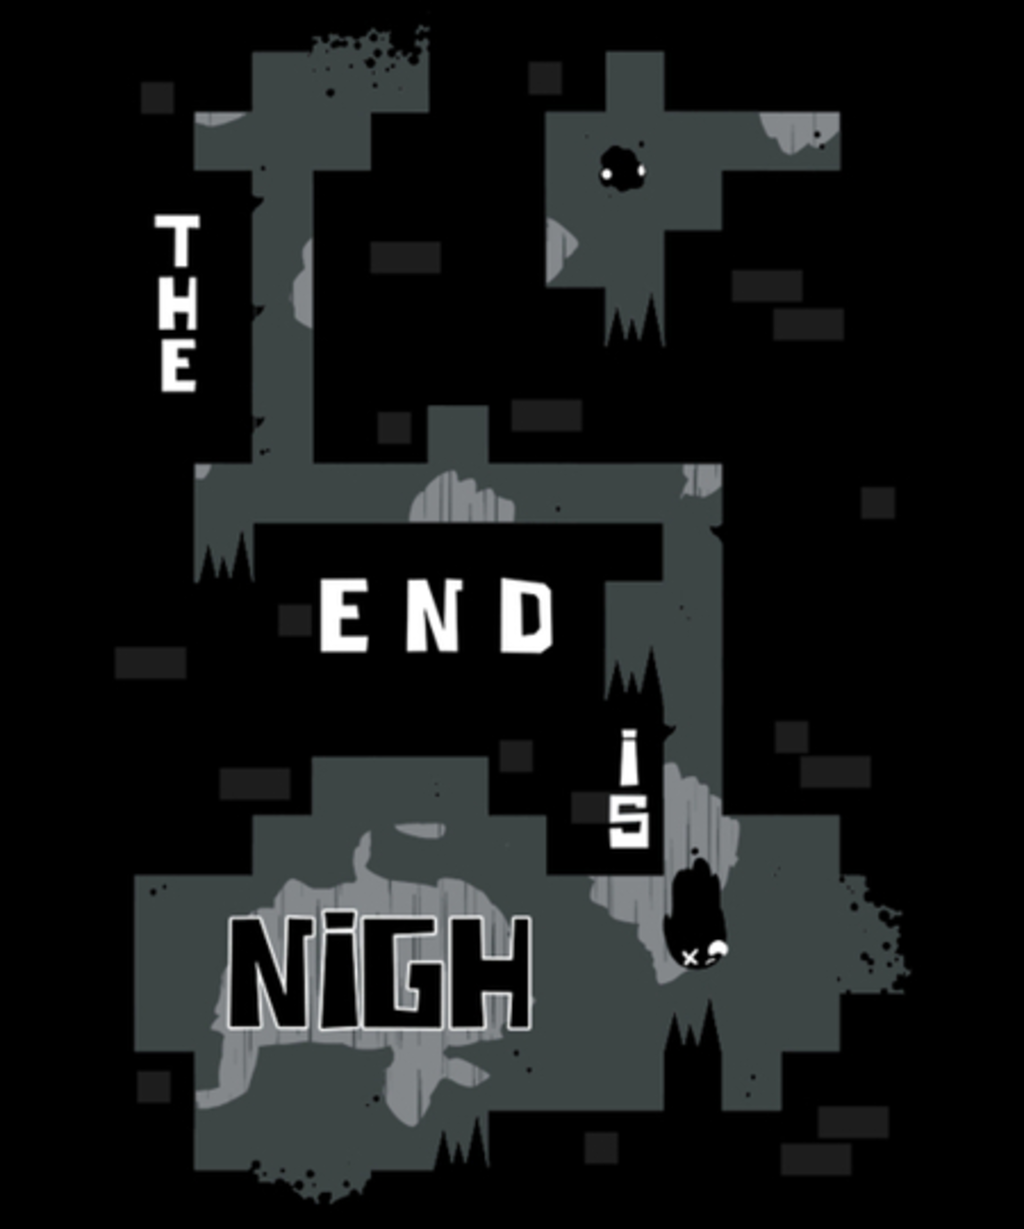 Qwertee: The End is Nigh